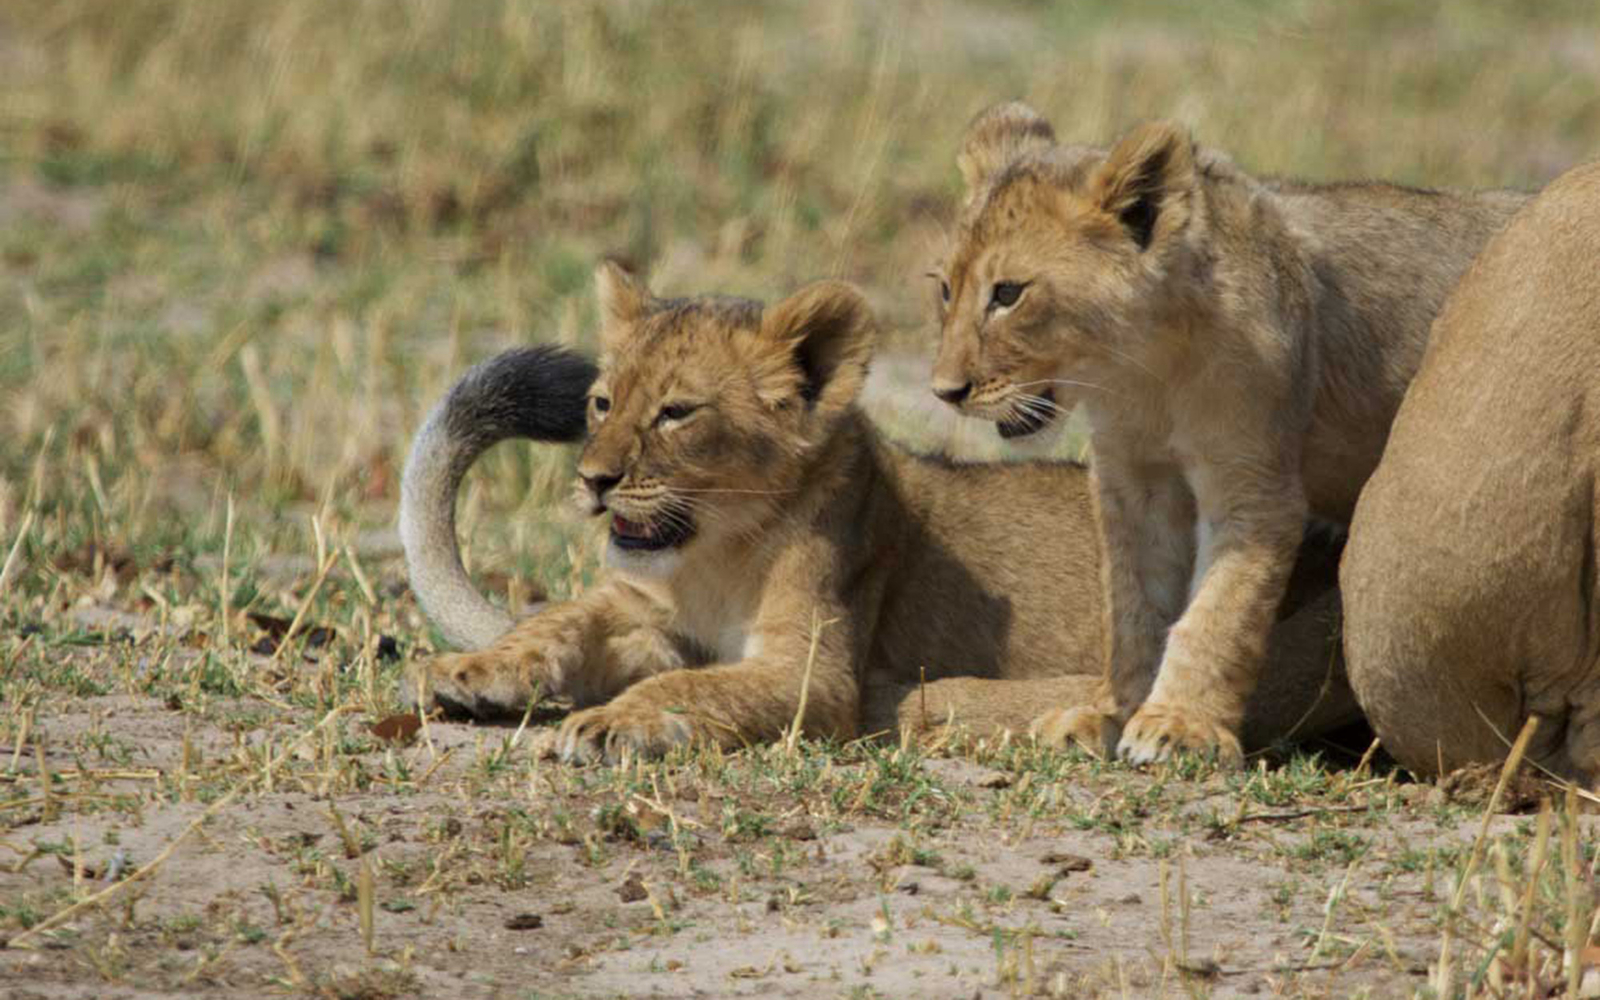 Cecil the lion has new grandcubs